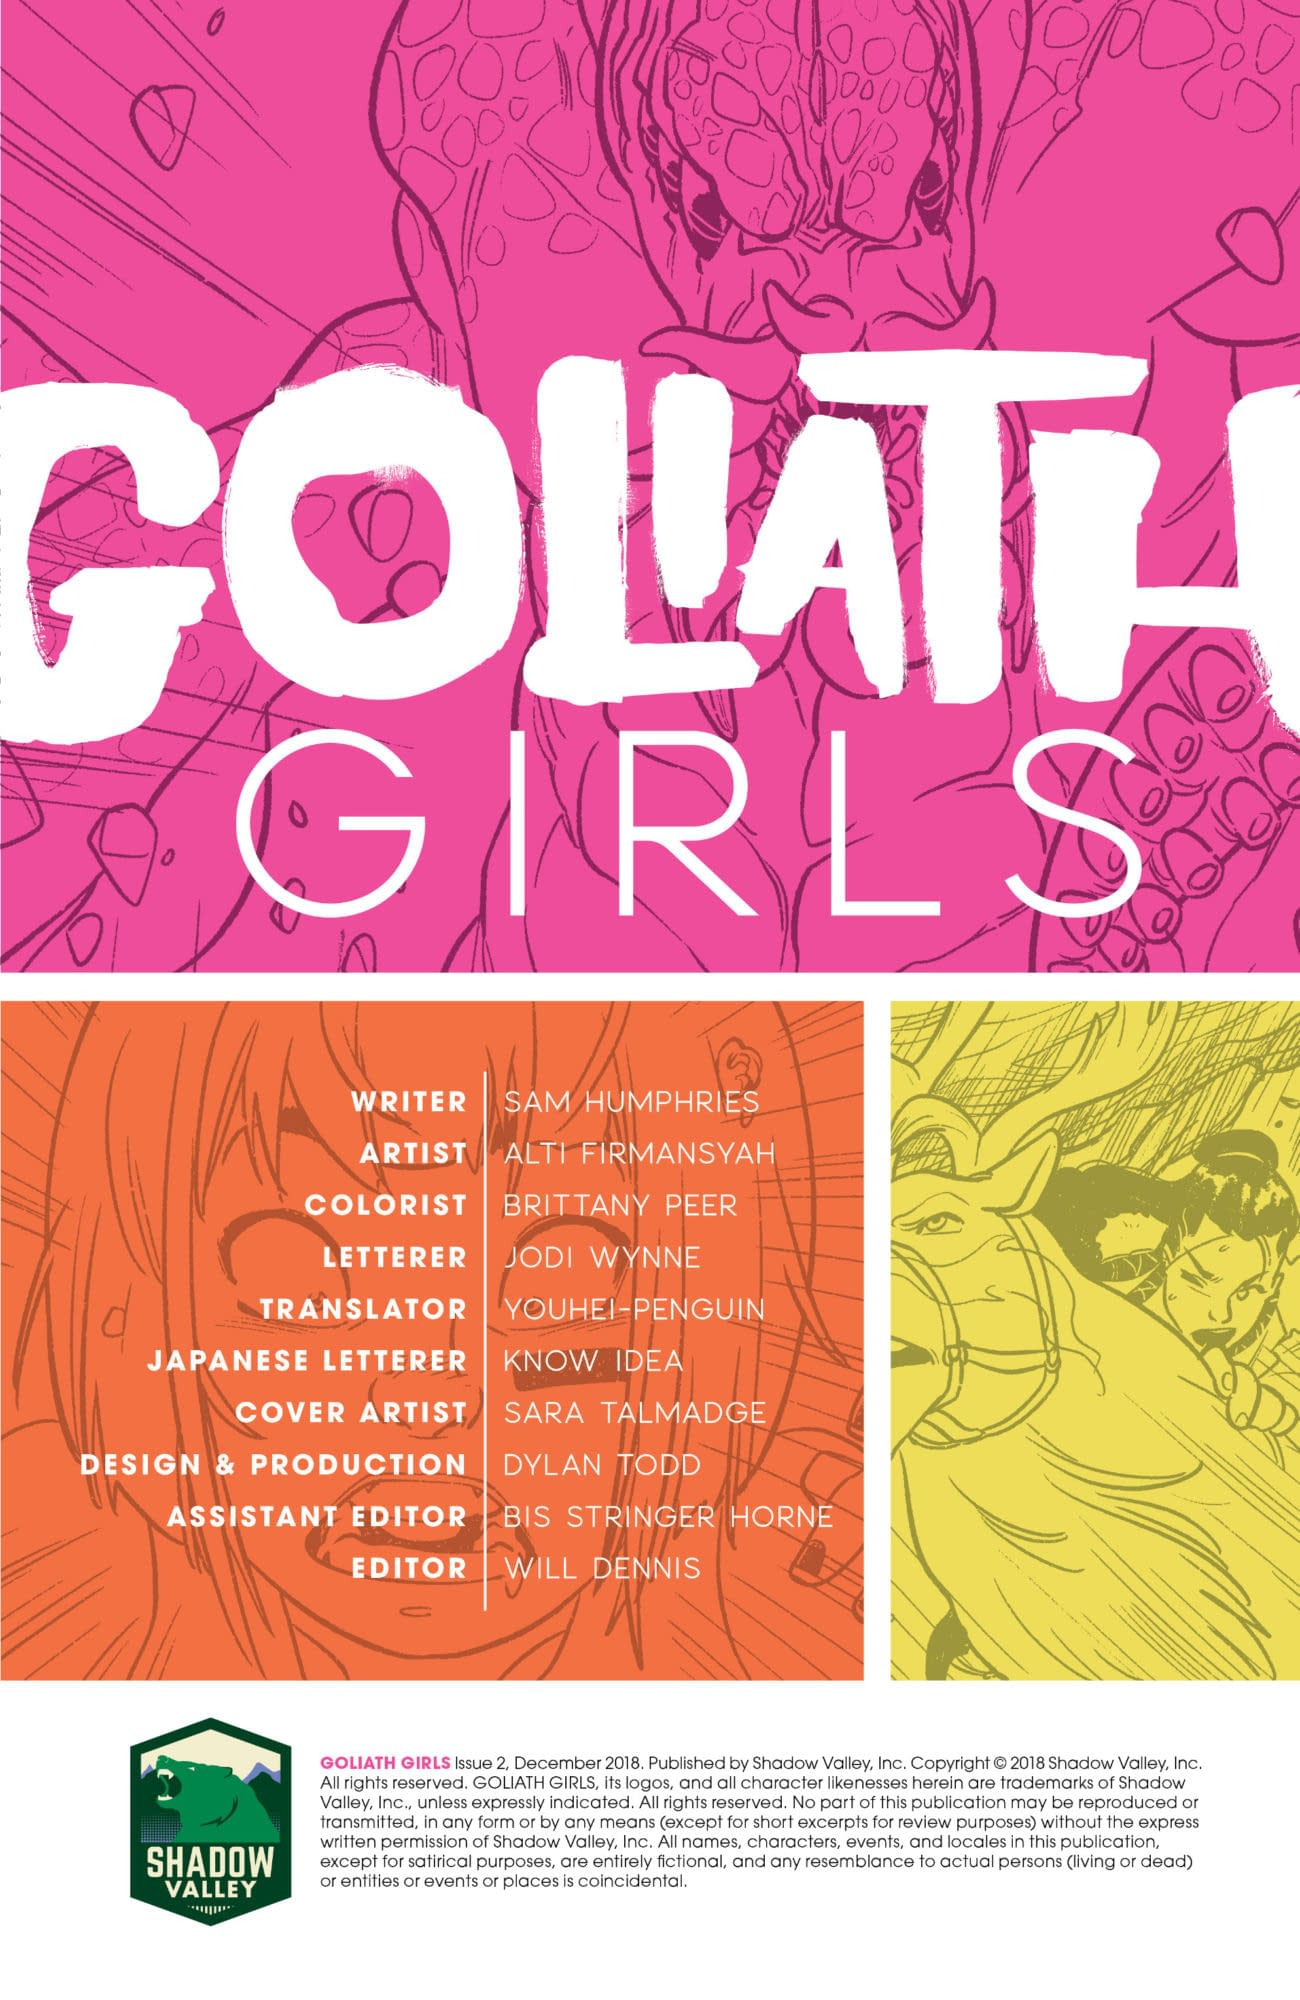 ComiXology Goes All in on Goliath Girls with Special Edition, Sam Humphries Sale